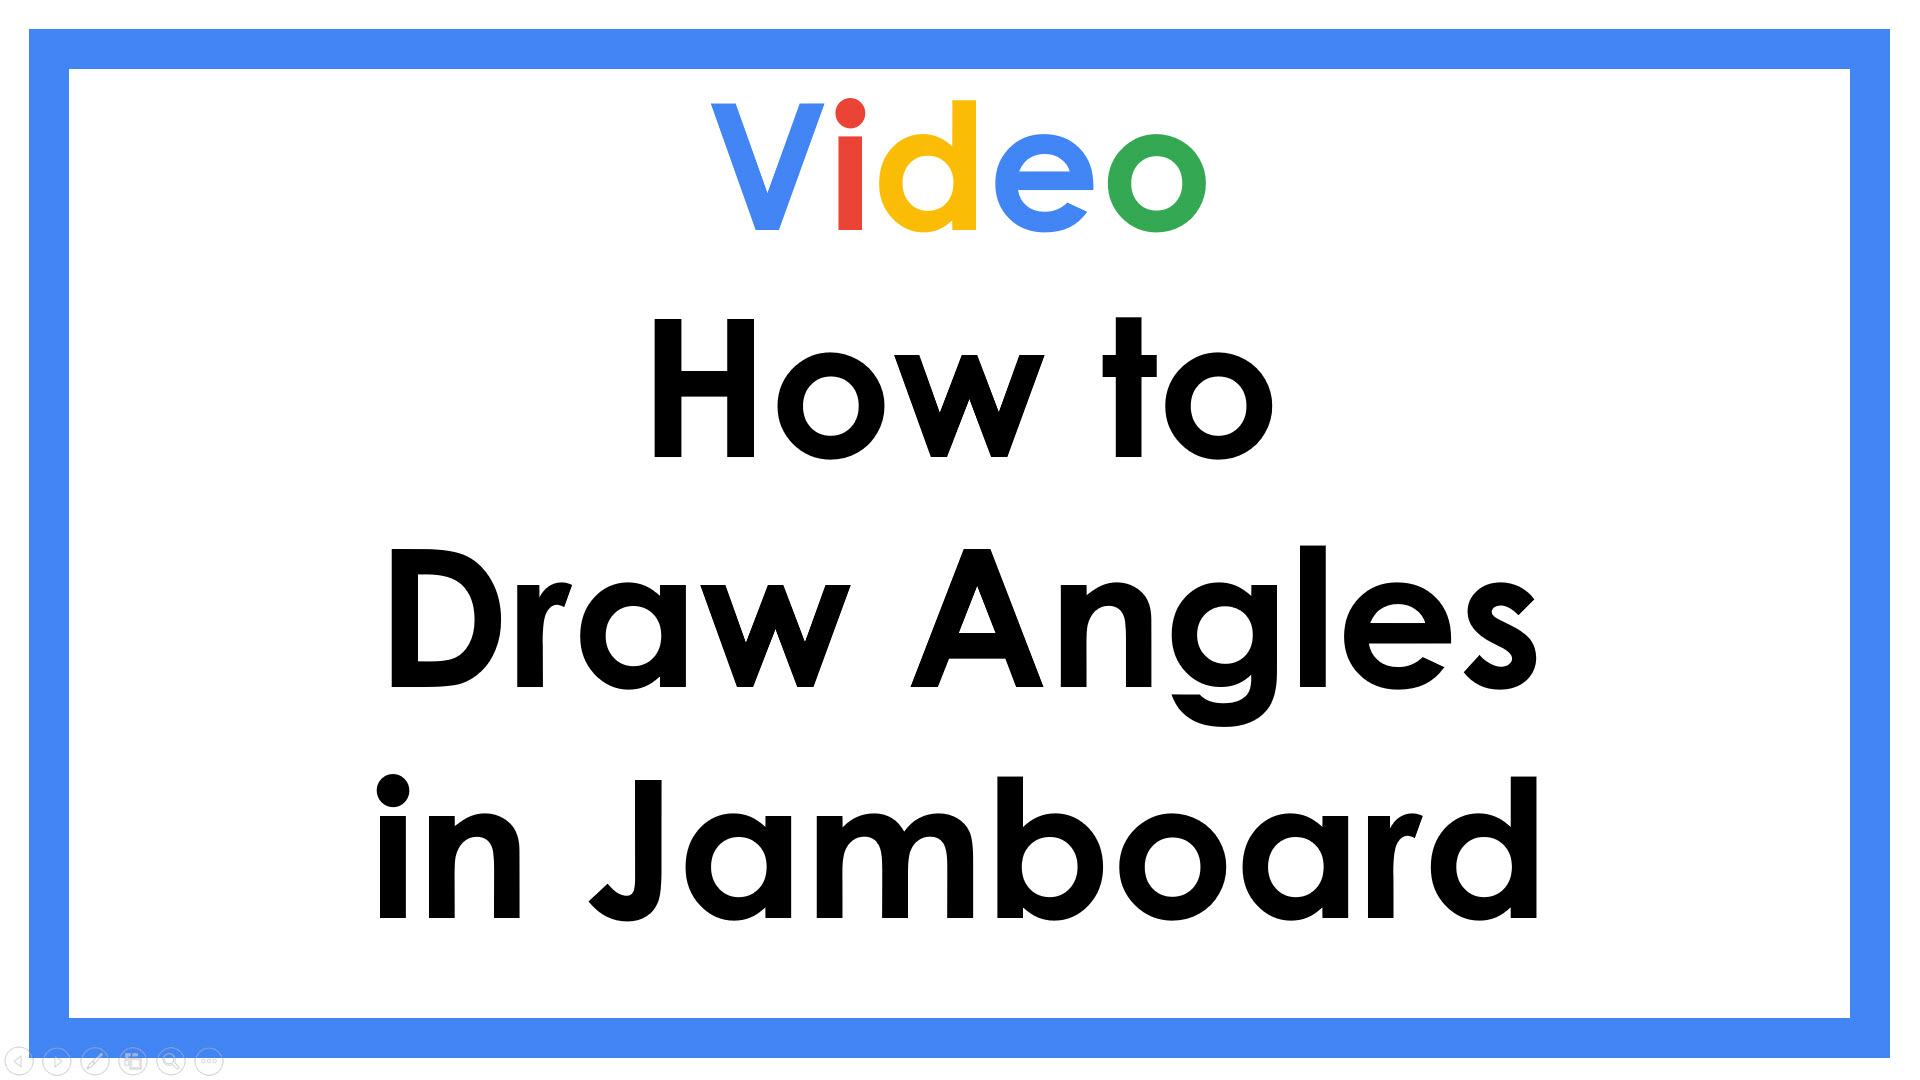 Drawing angles in Jamboard